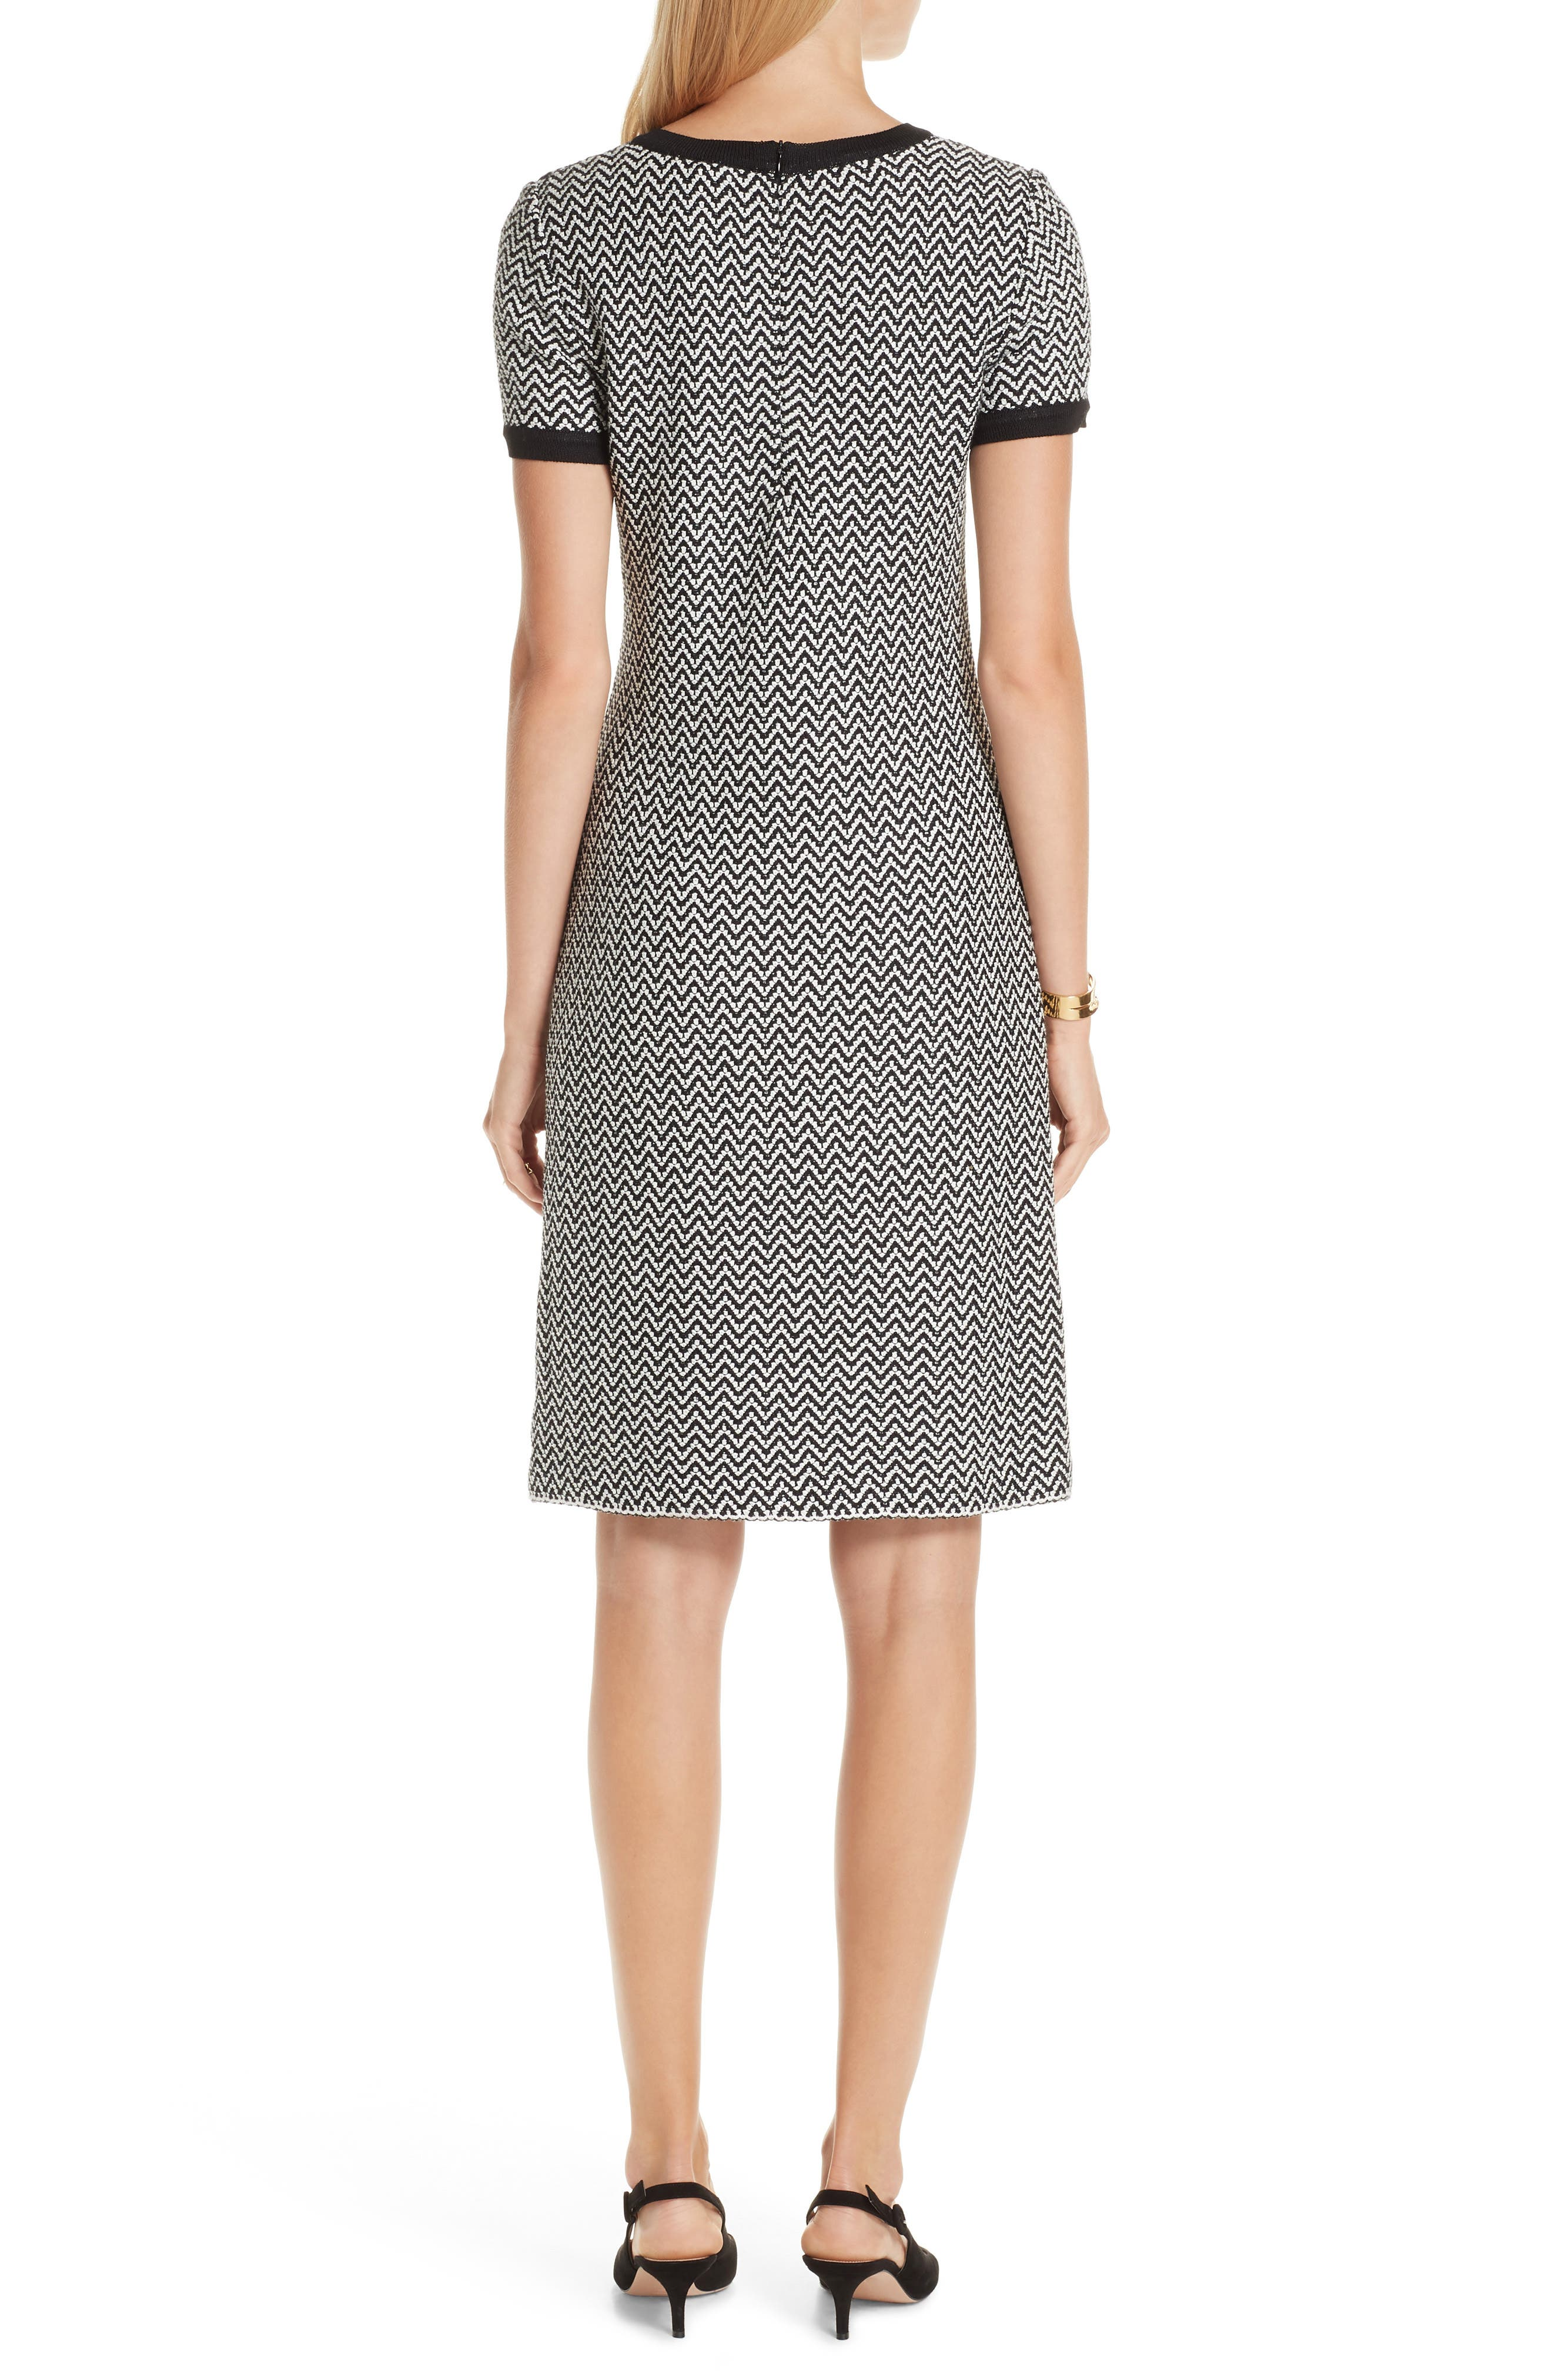 ST. JOHN COLLECTION, Mod Herringbone Knit Dress, Alternate thumbnail 2, color, CAVIAR/ CREAM